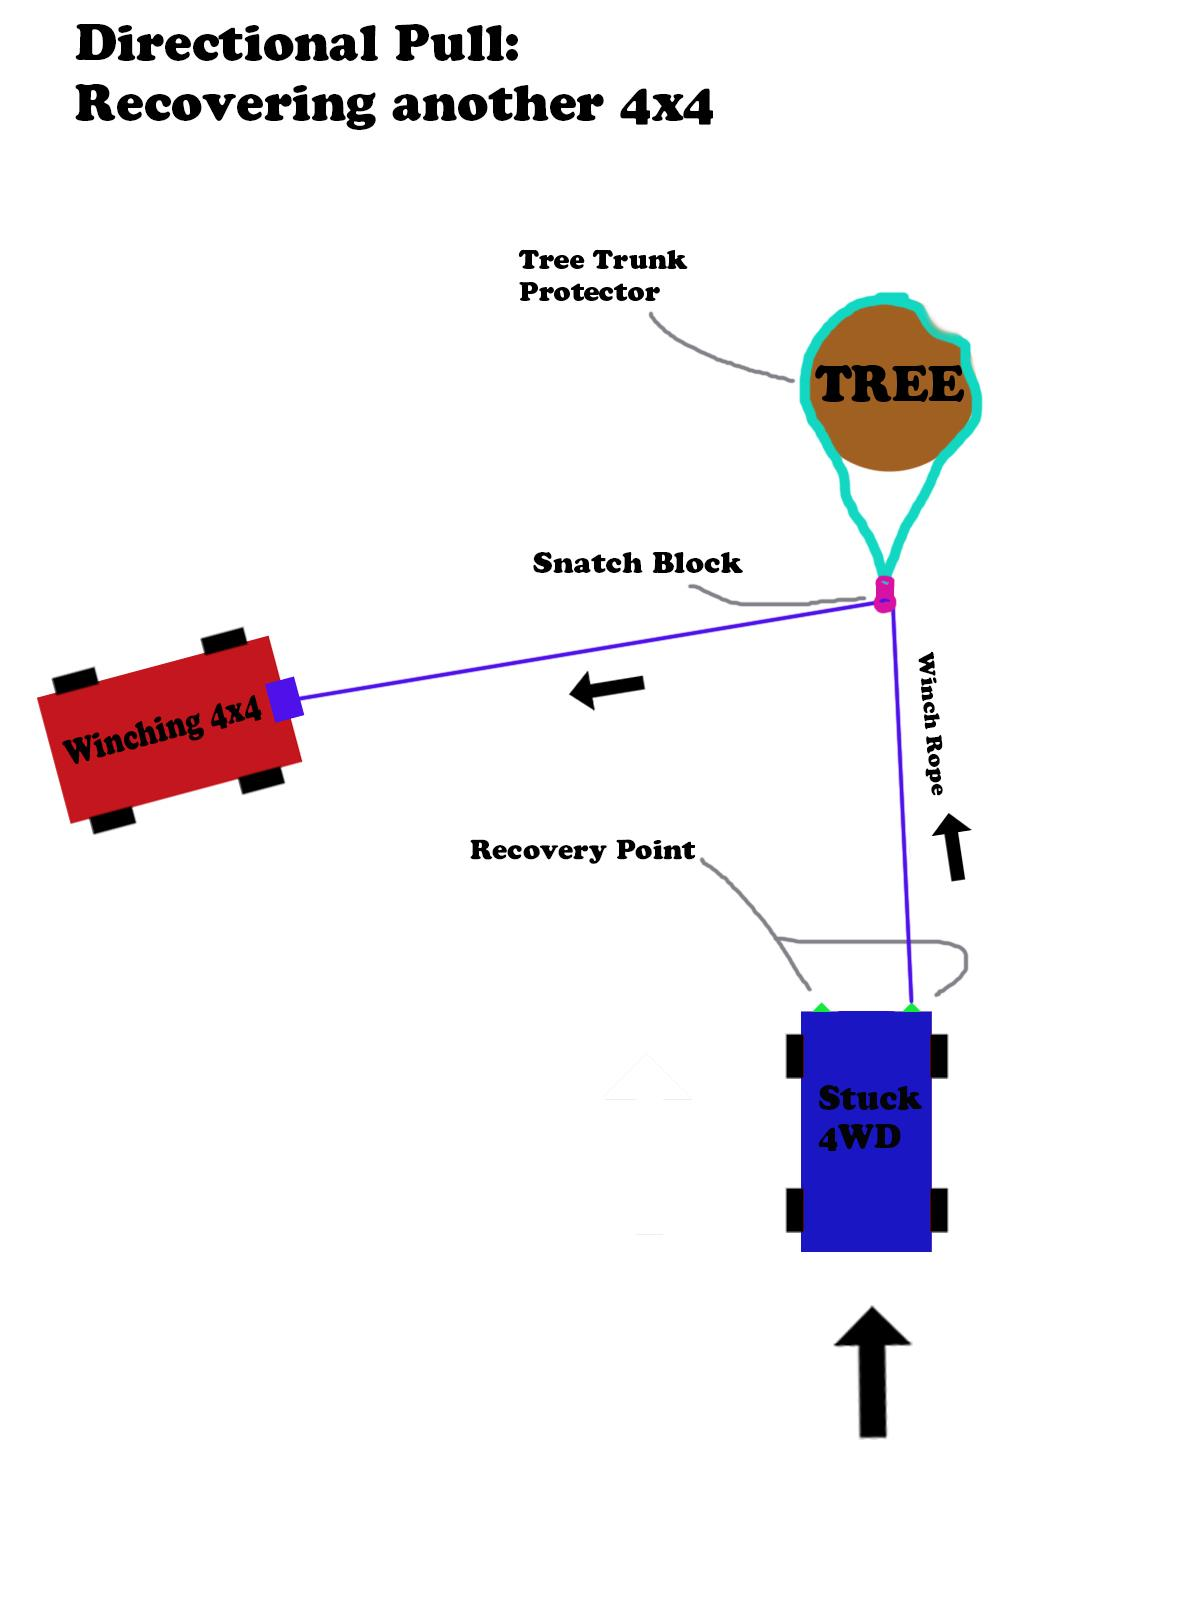 Diagram: Directional Pull Recovering another 4x4.